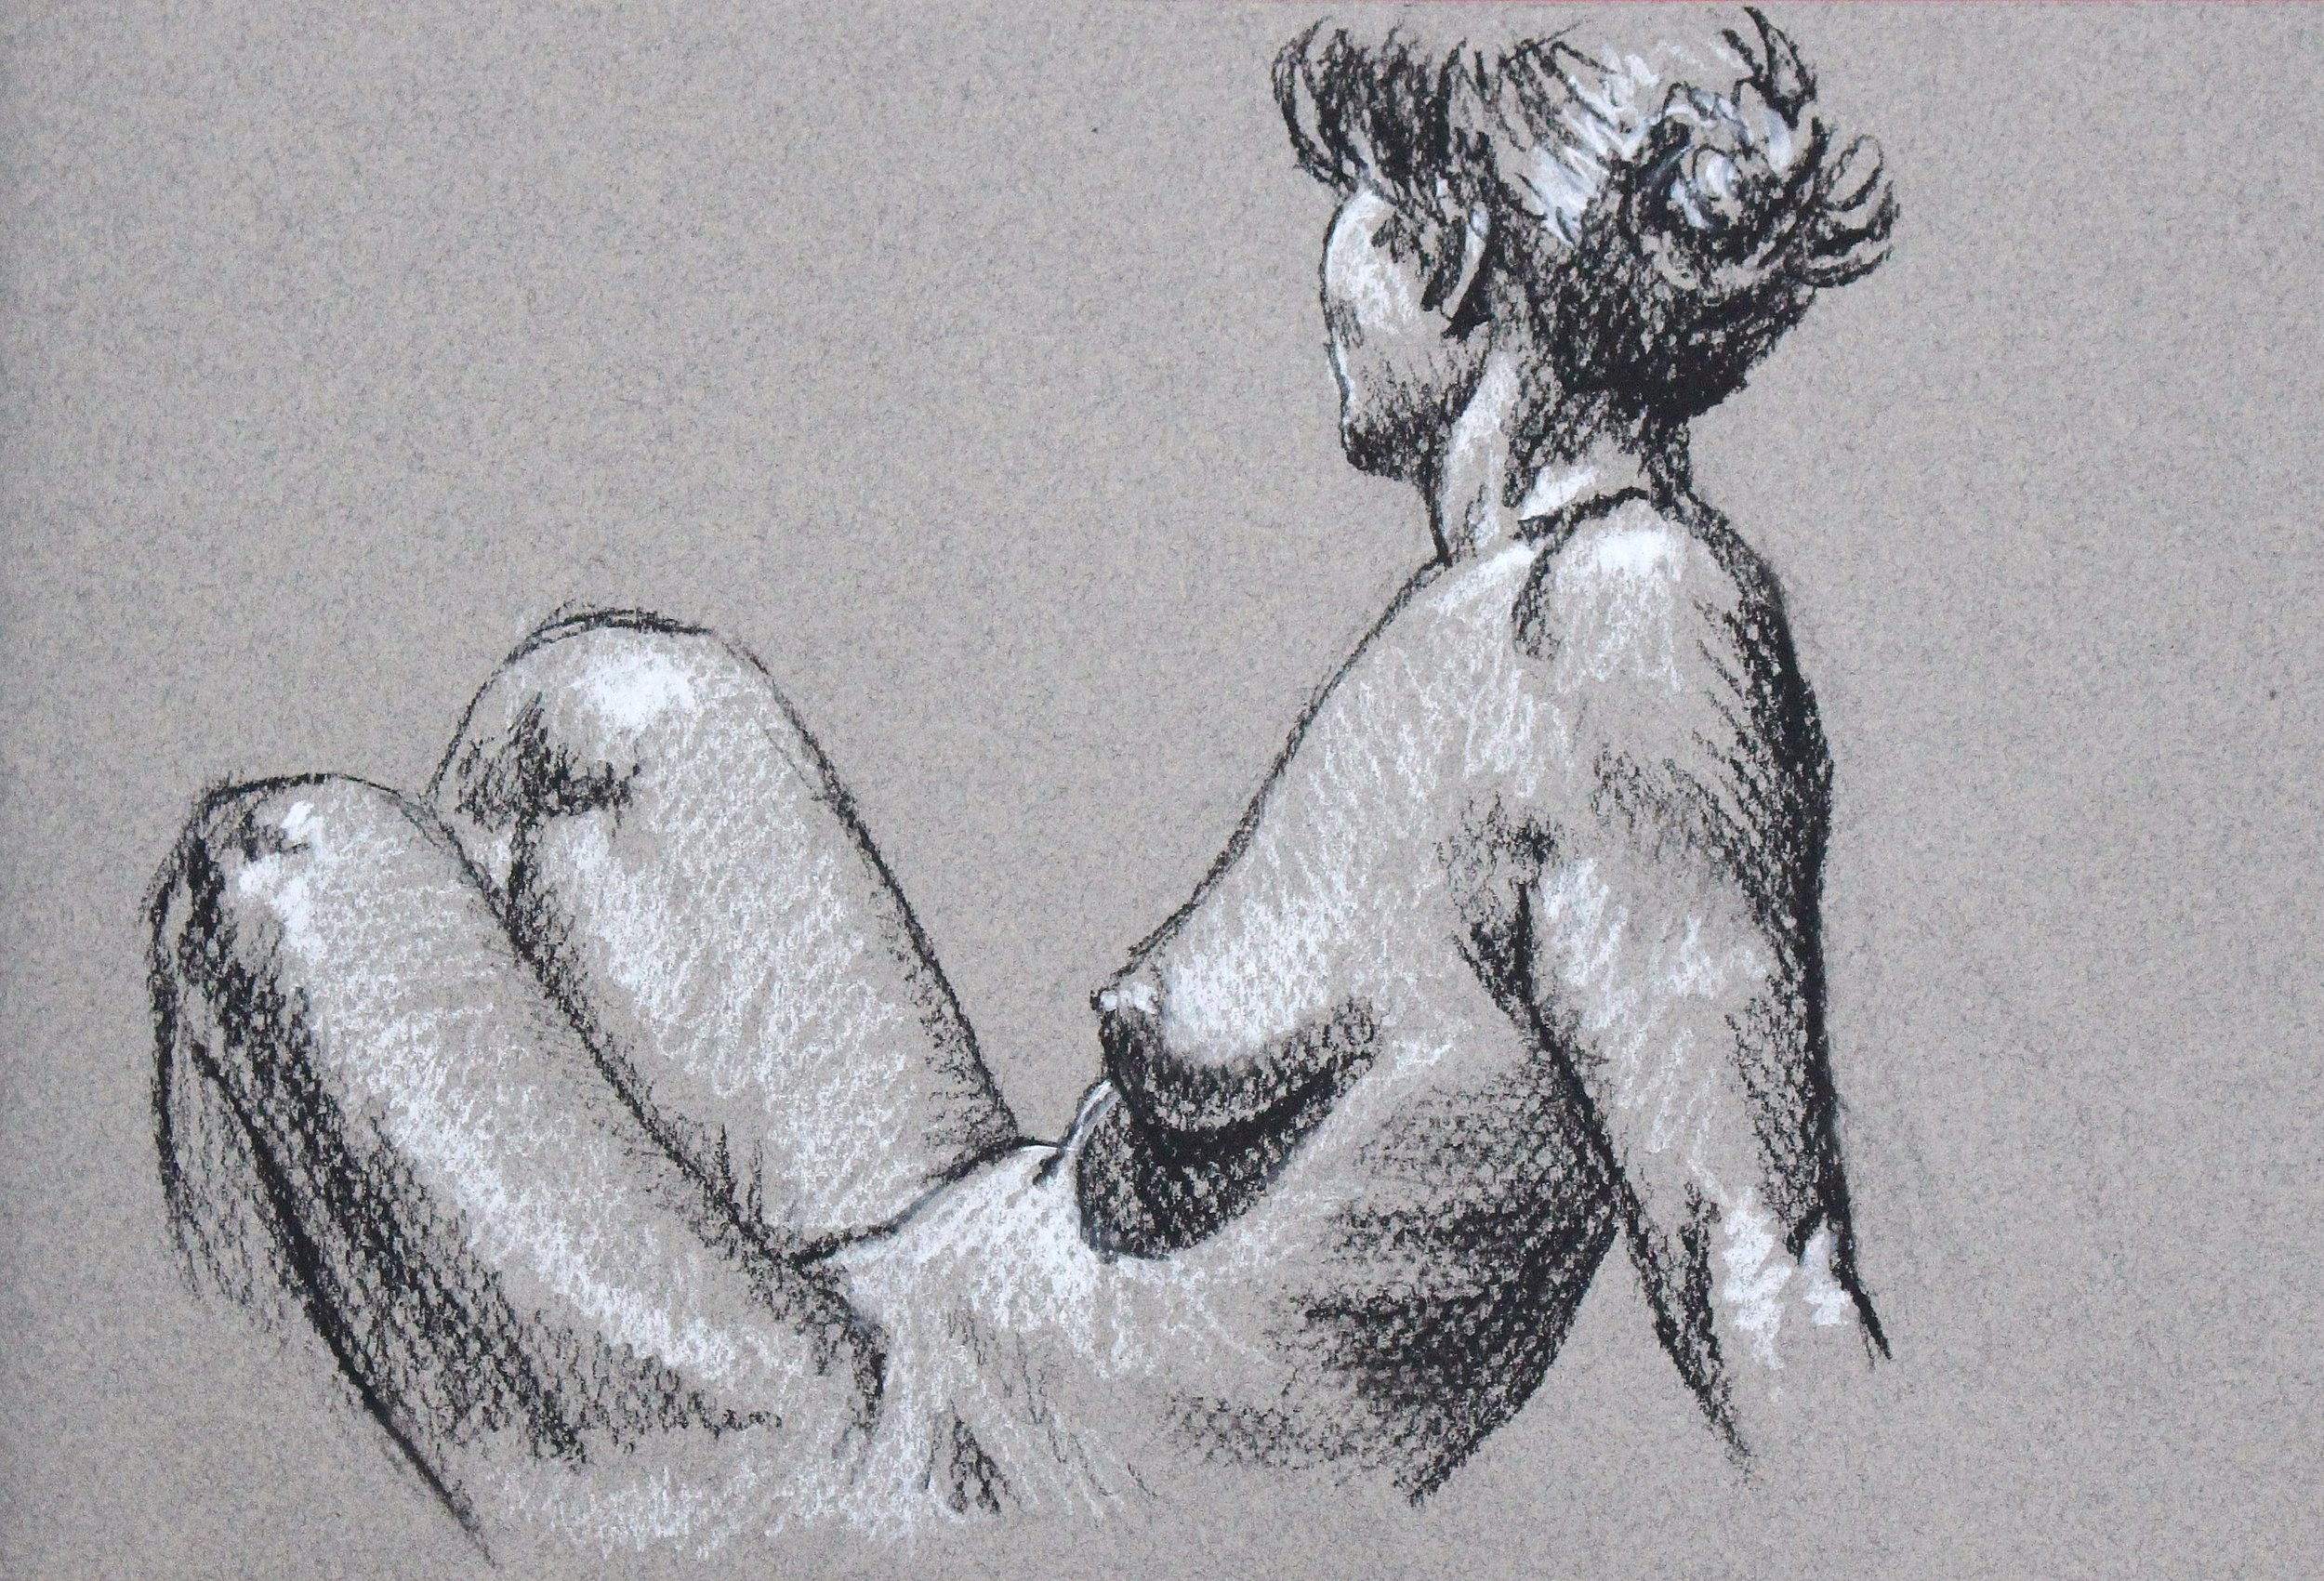 figure drawing in charcoal